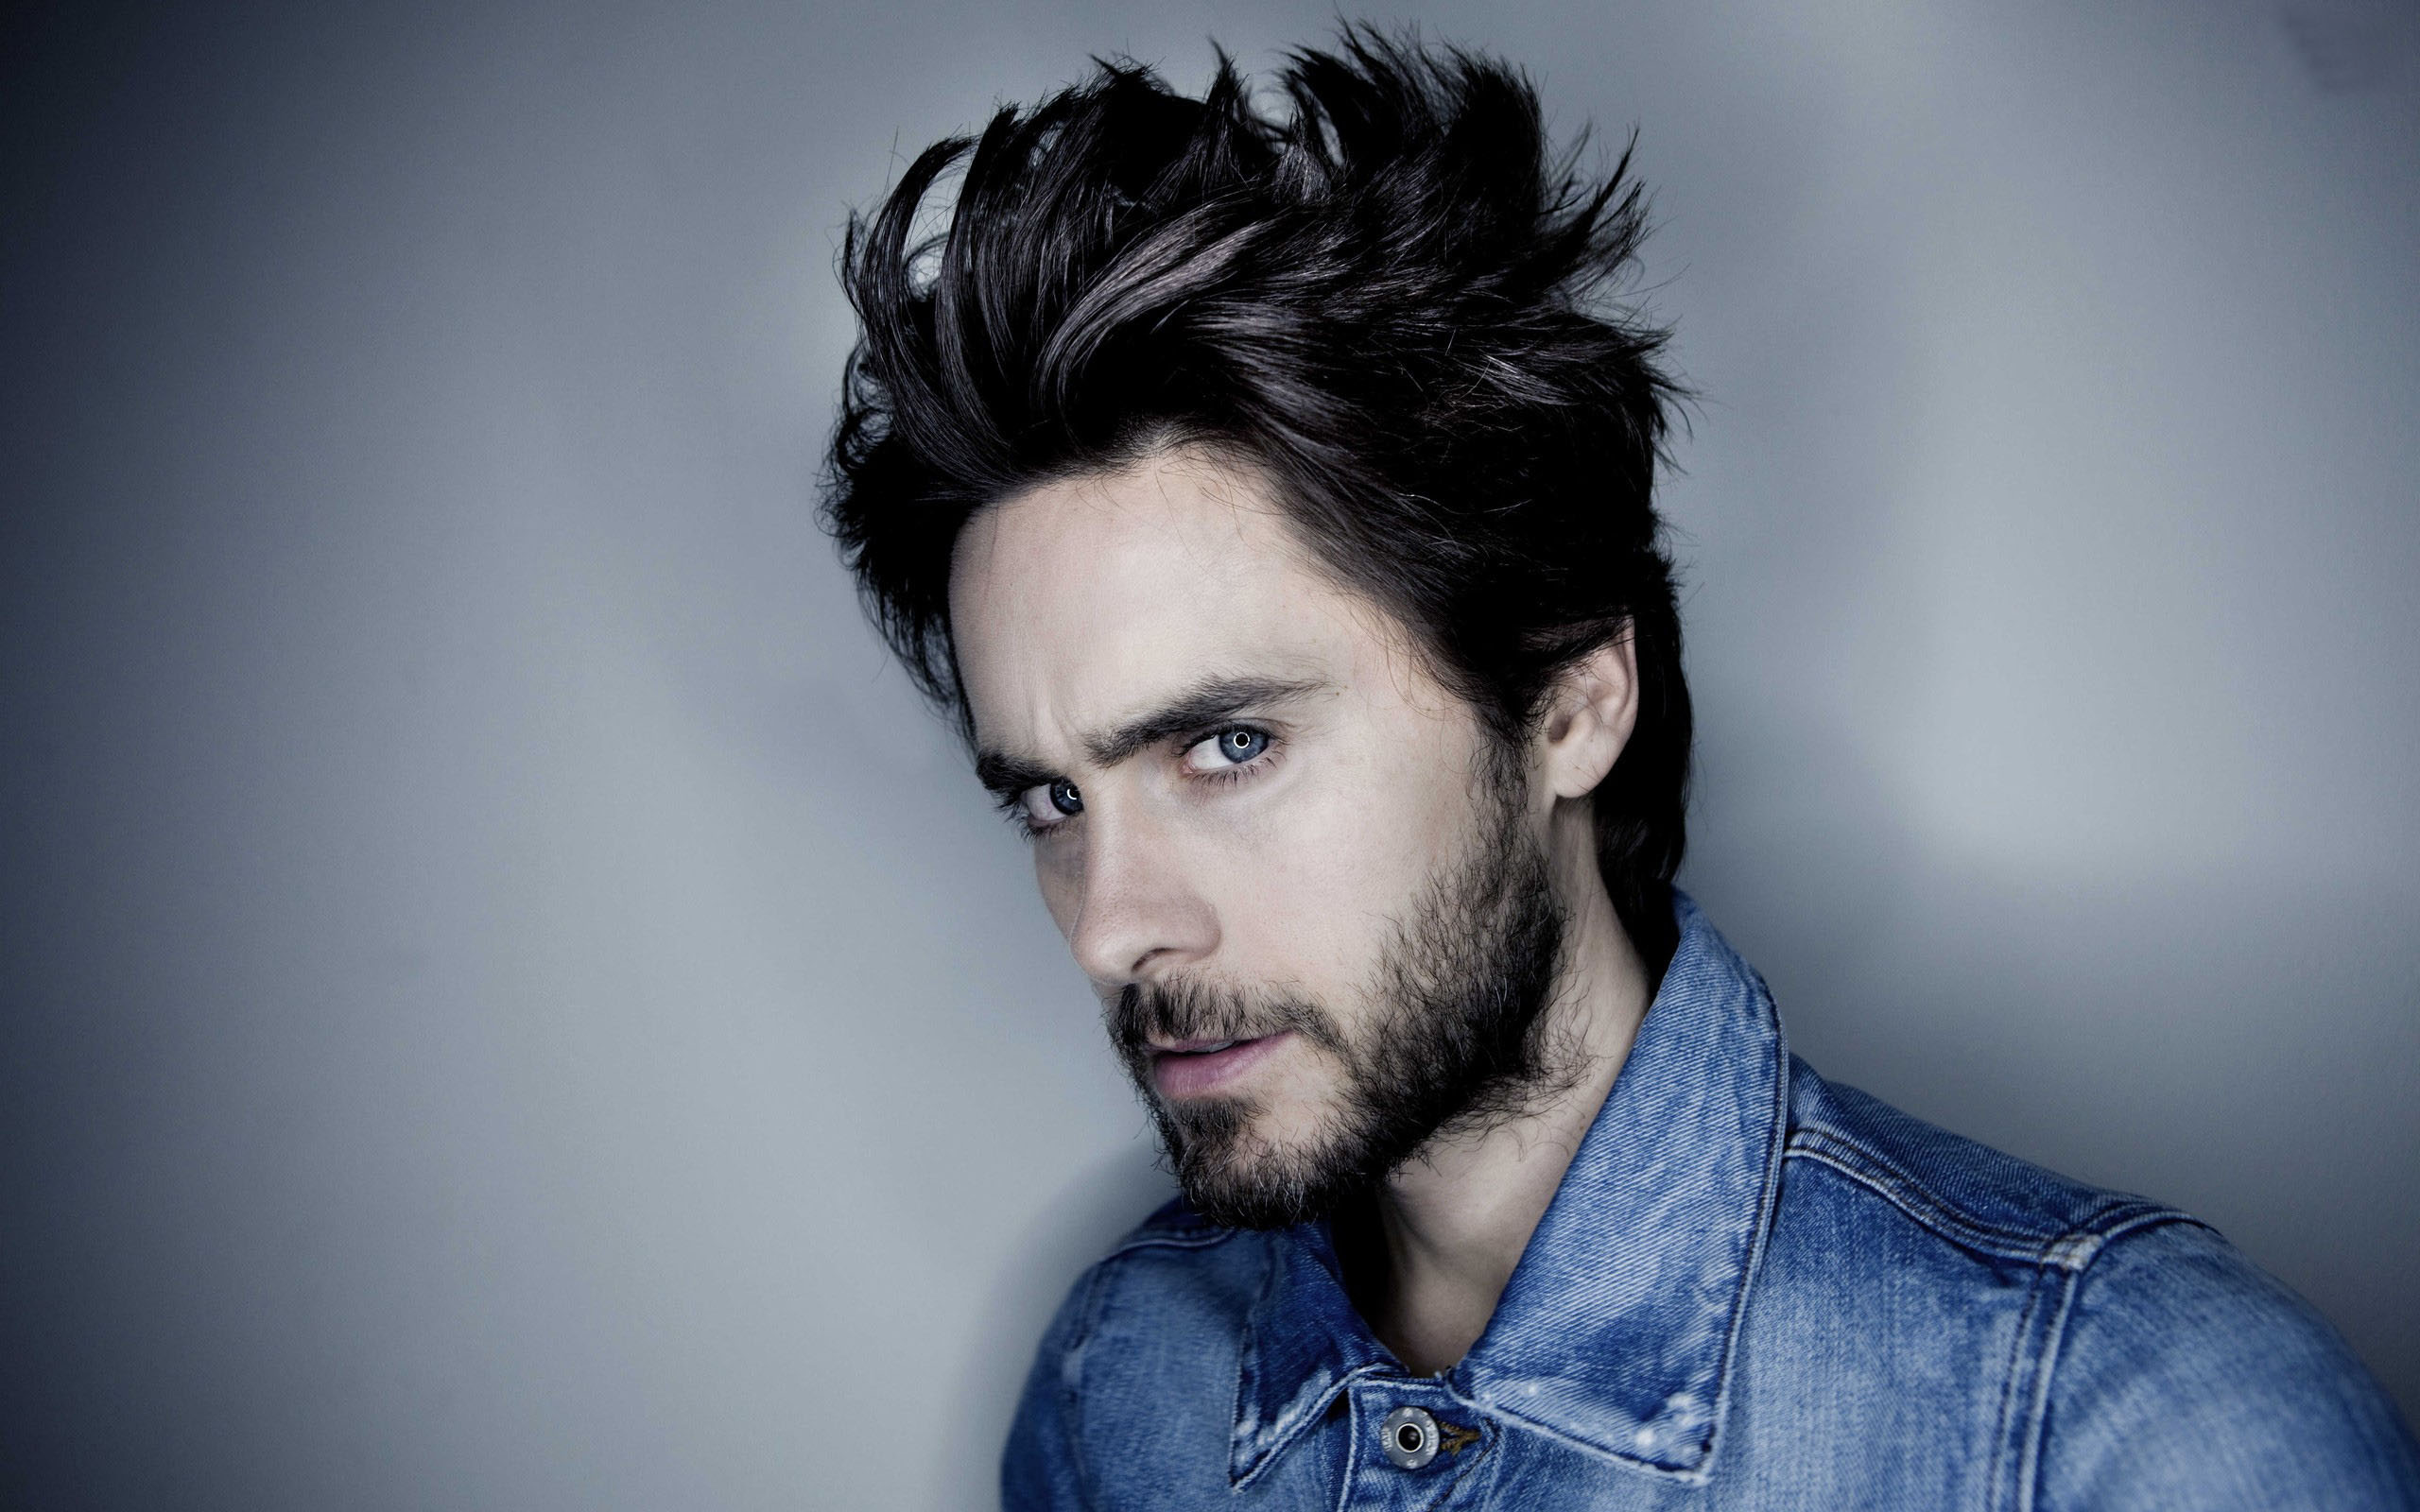 jared leto wallpaper hd 50871